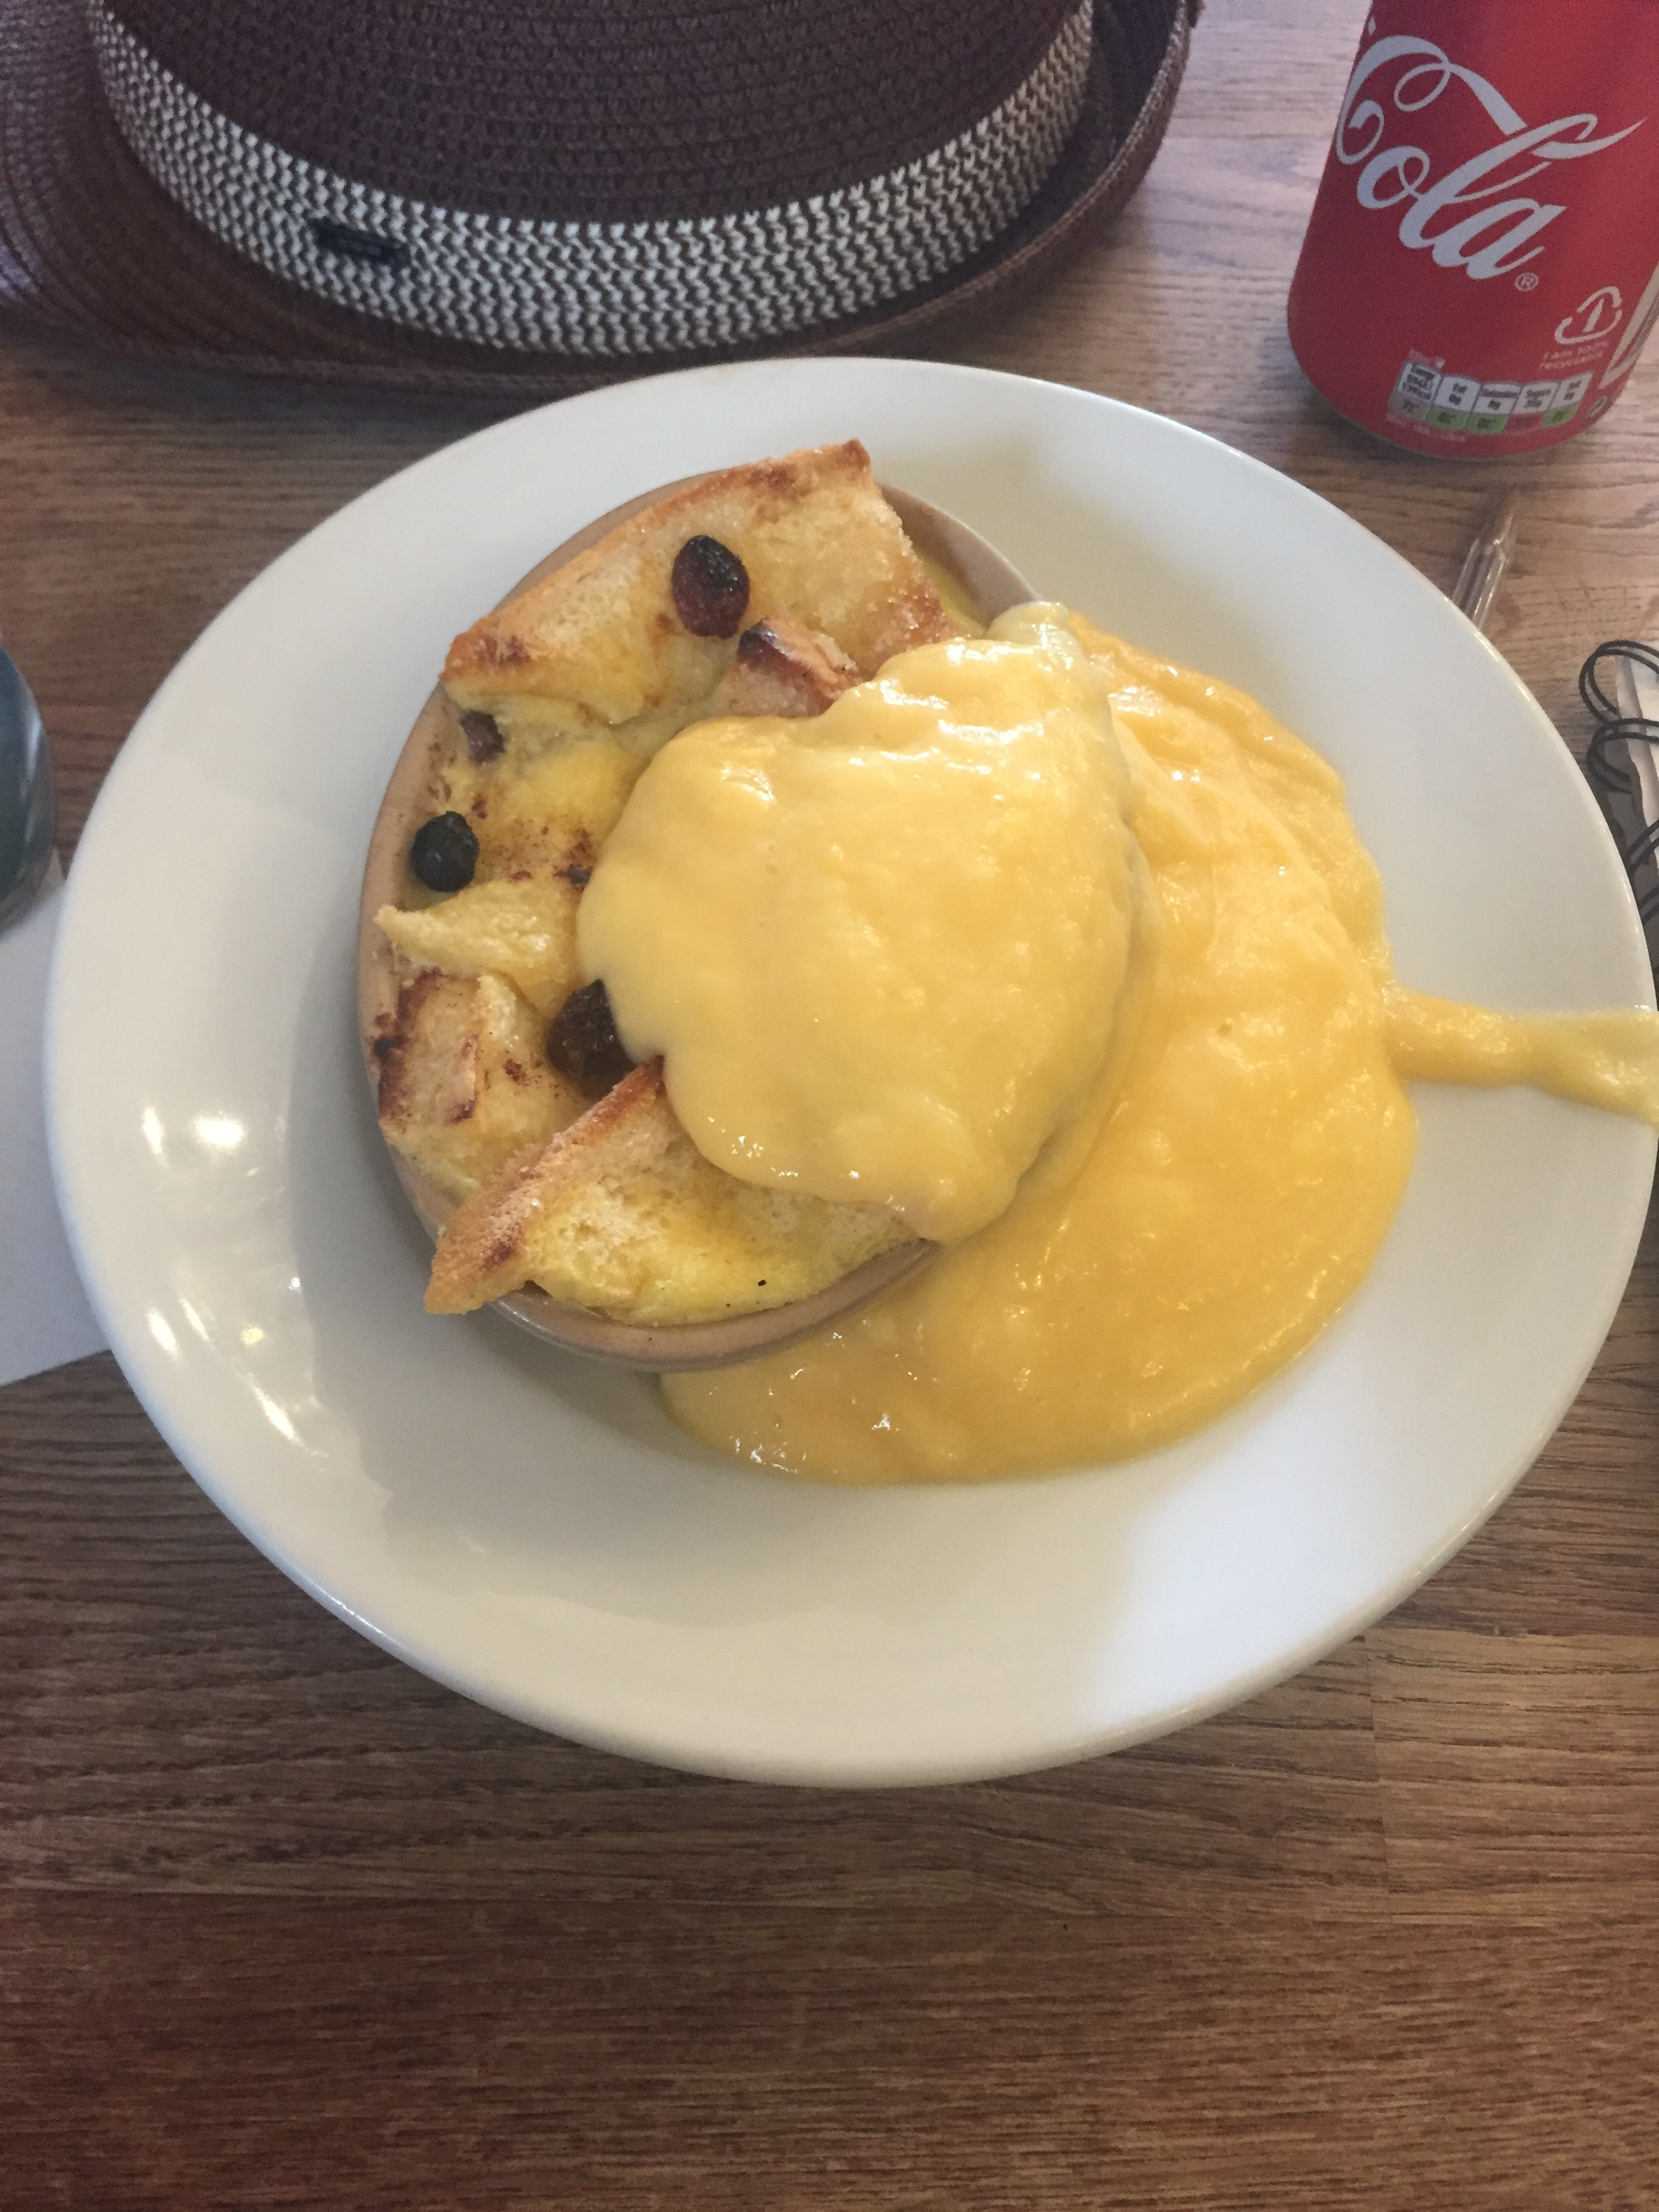 thepoetofcuisine : Bread and butter pudding